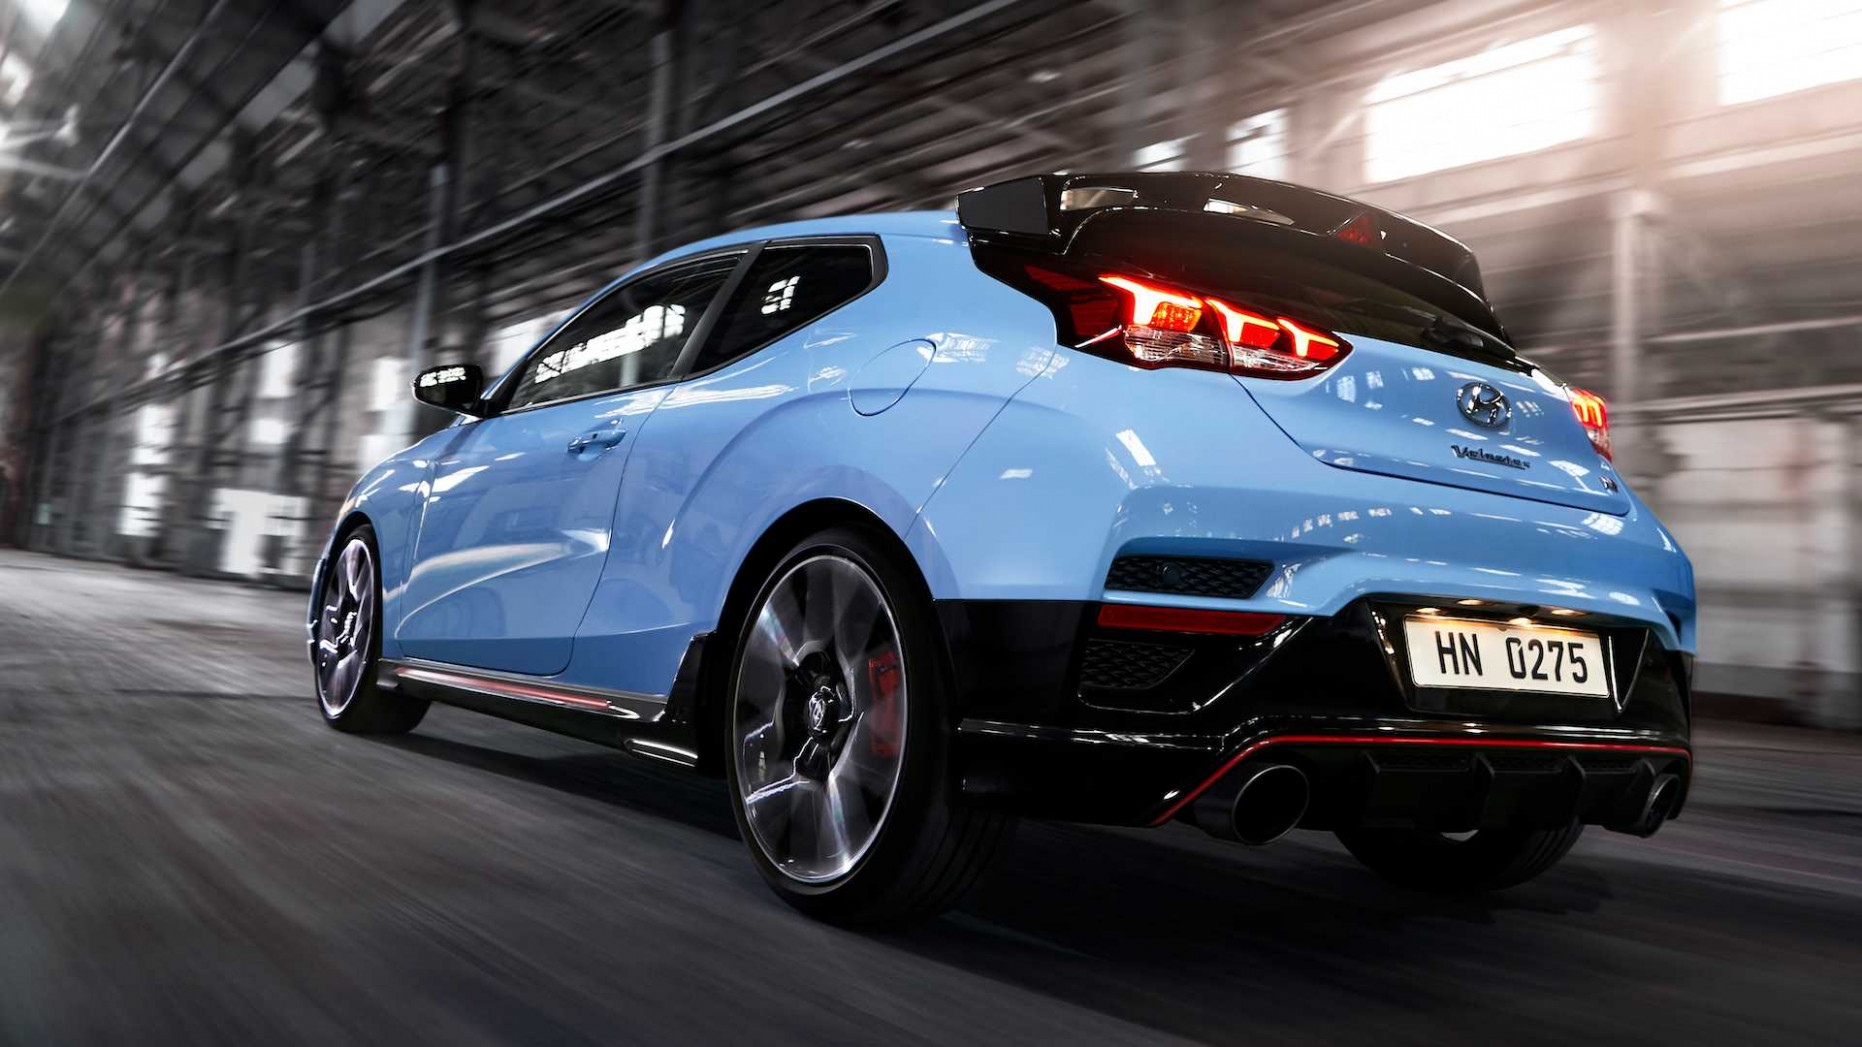 Hyundai Veloster N With New DCT Gearbox Featured In-Depth In Video